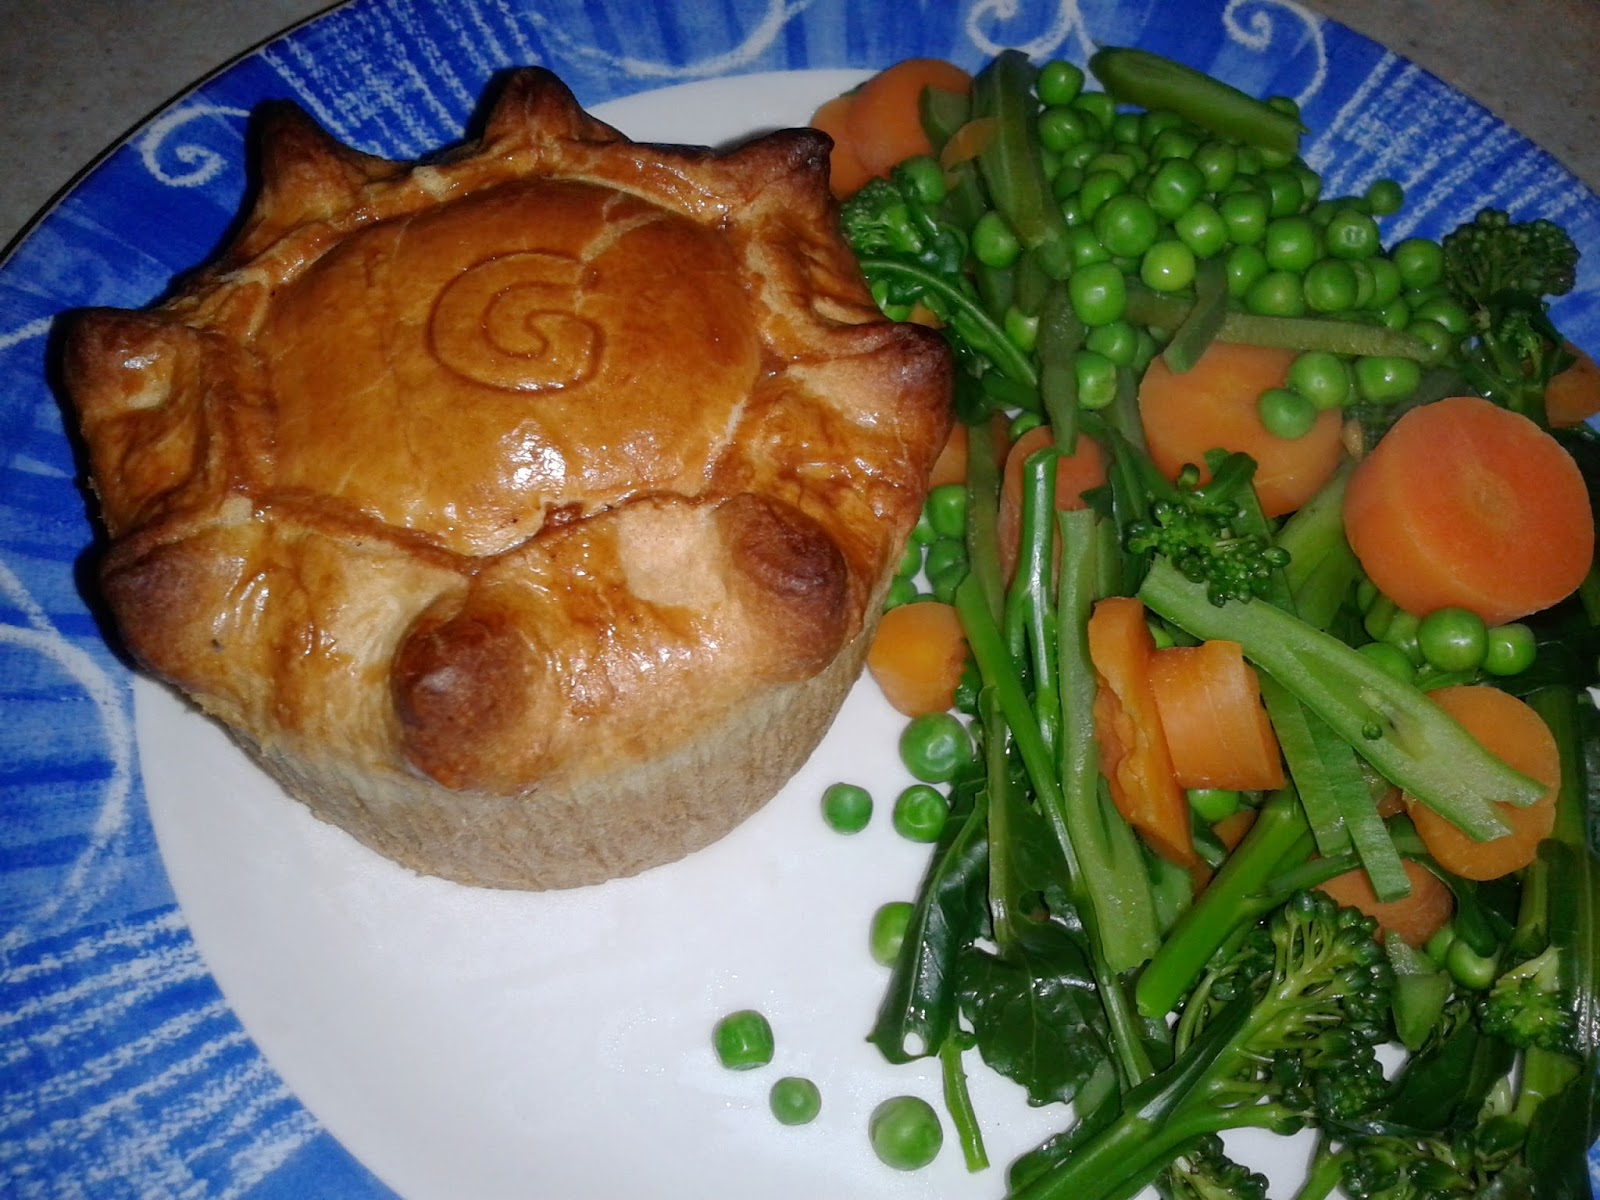 Pauls Pies - steak and guinness